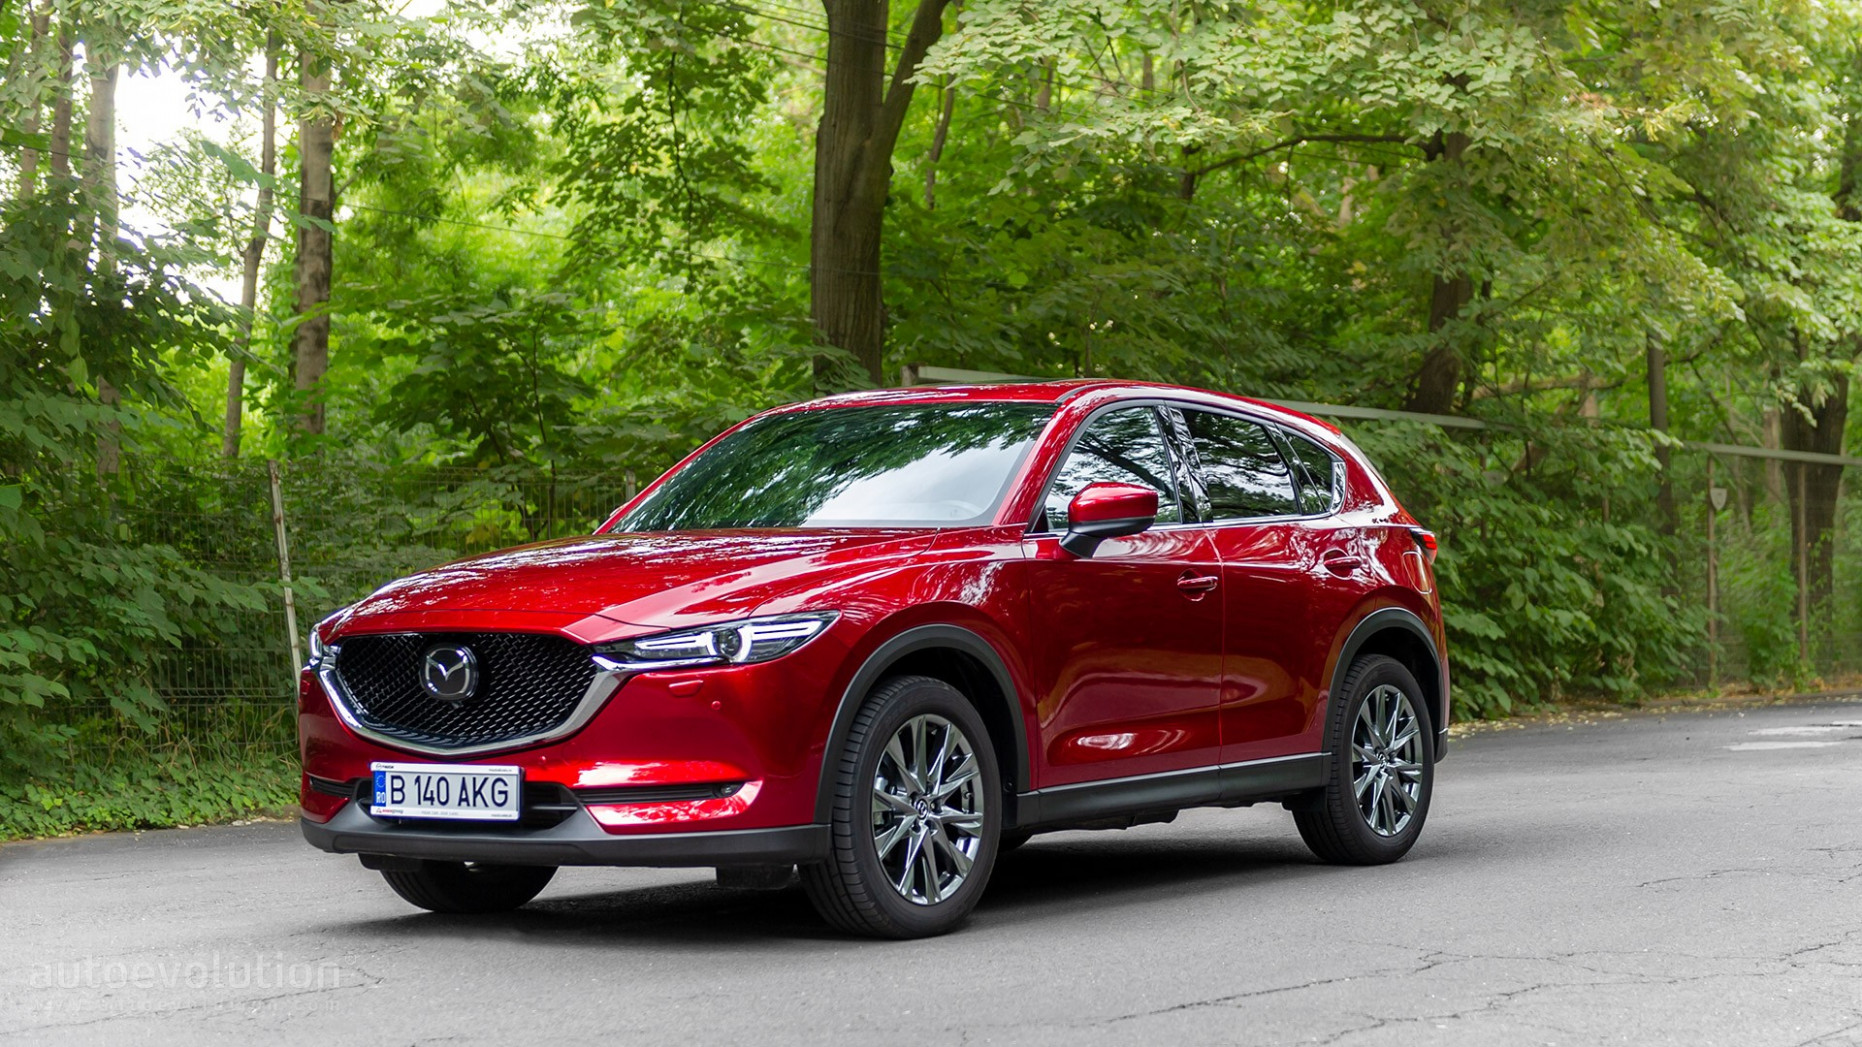 Redesign and Review 2022 Mazda CX-9s